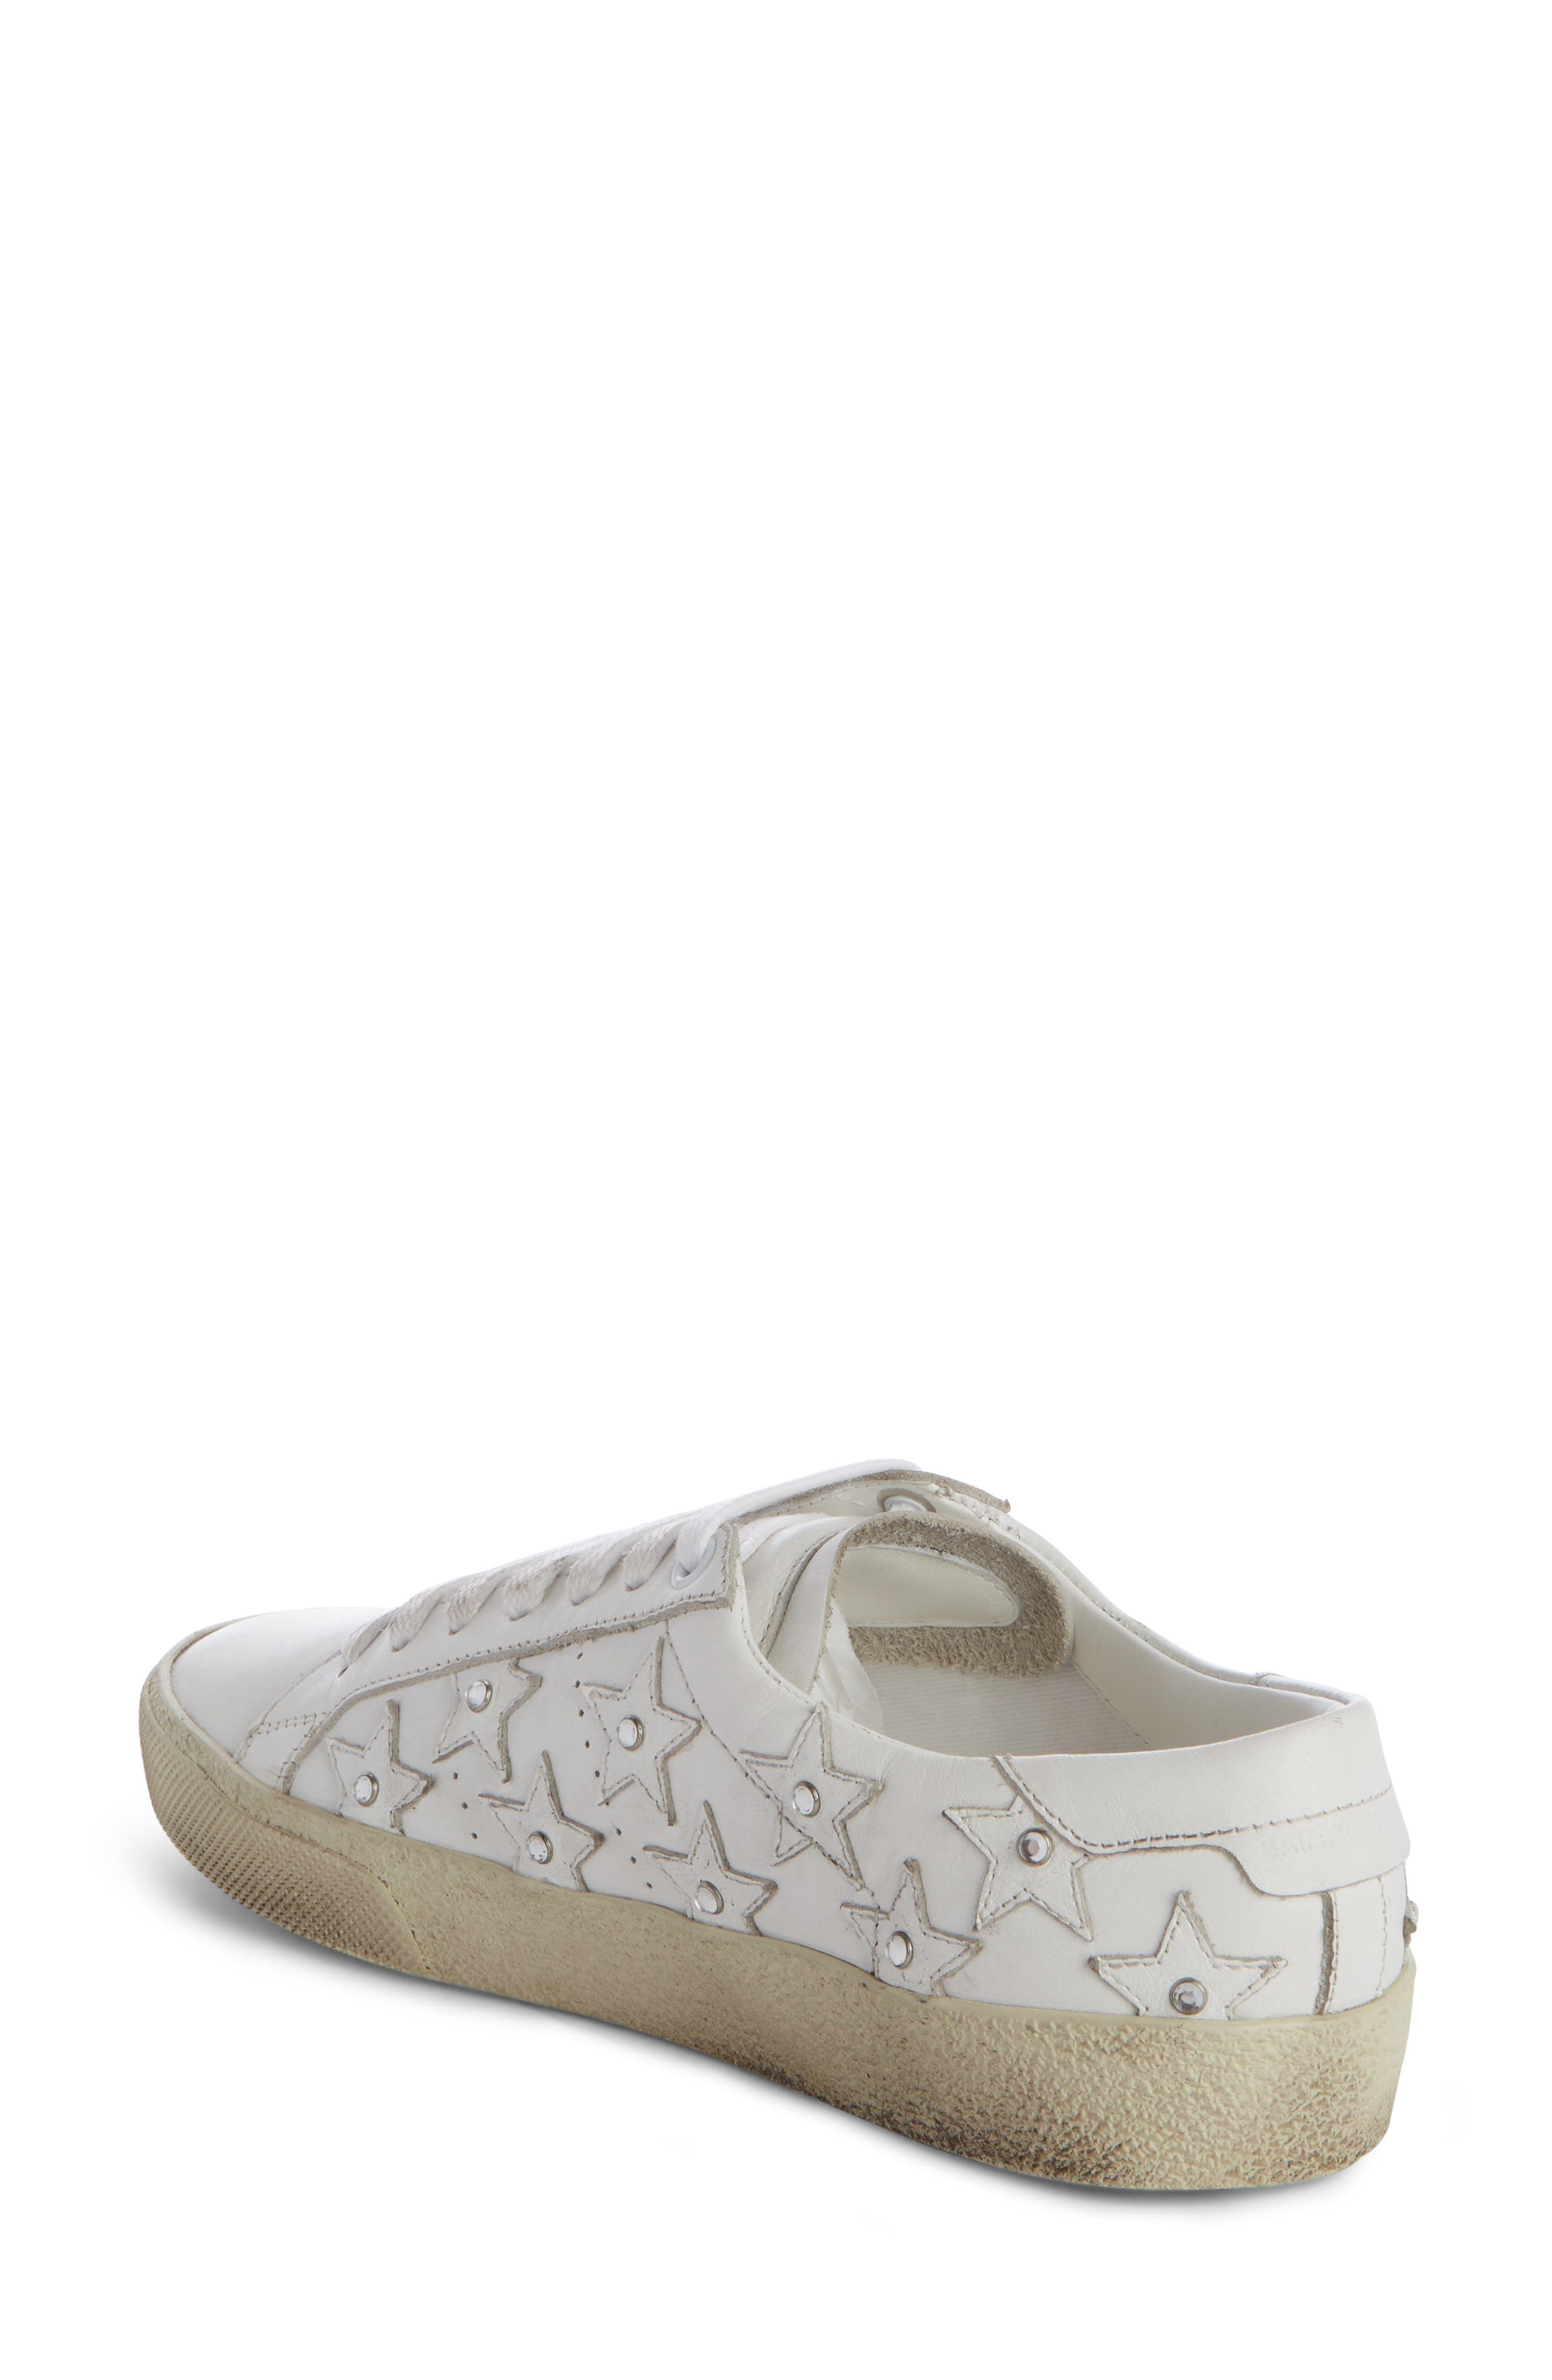 Court Classic Embellished Star Sneaker,                             Alternate thumbnail 2, color,                             White